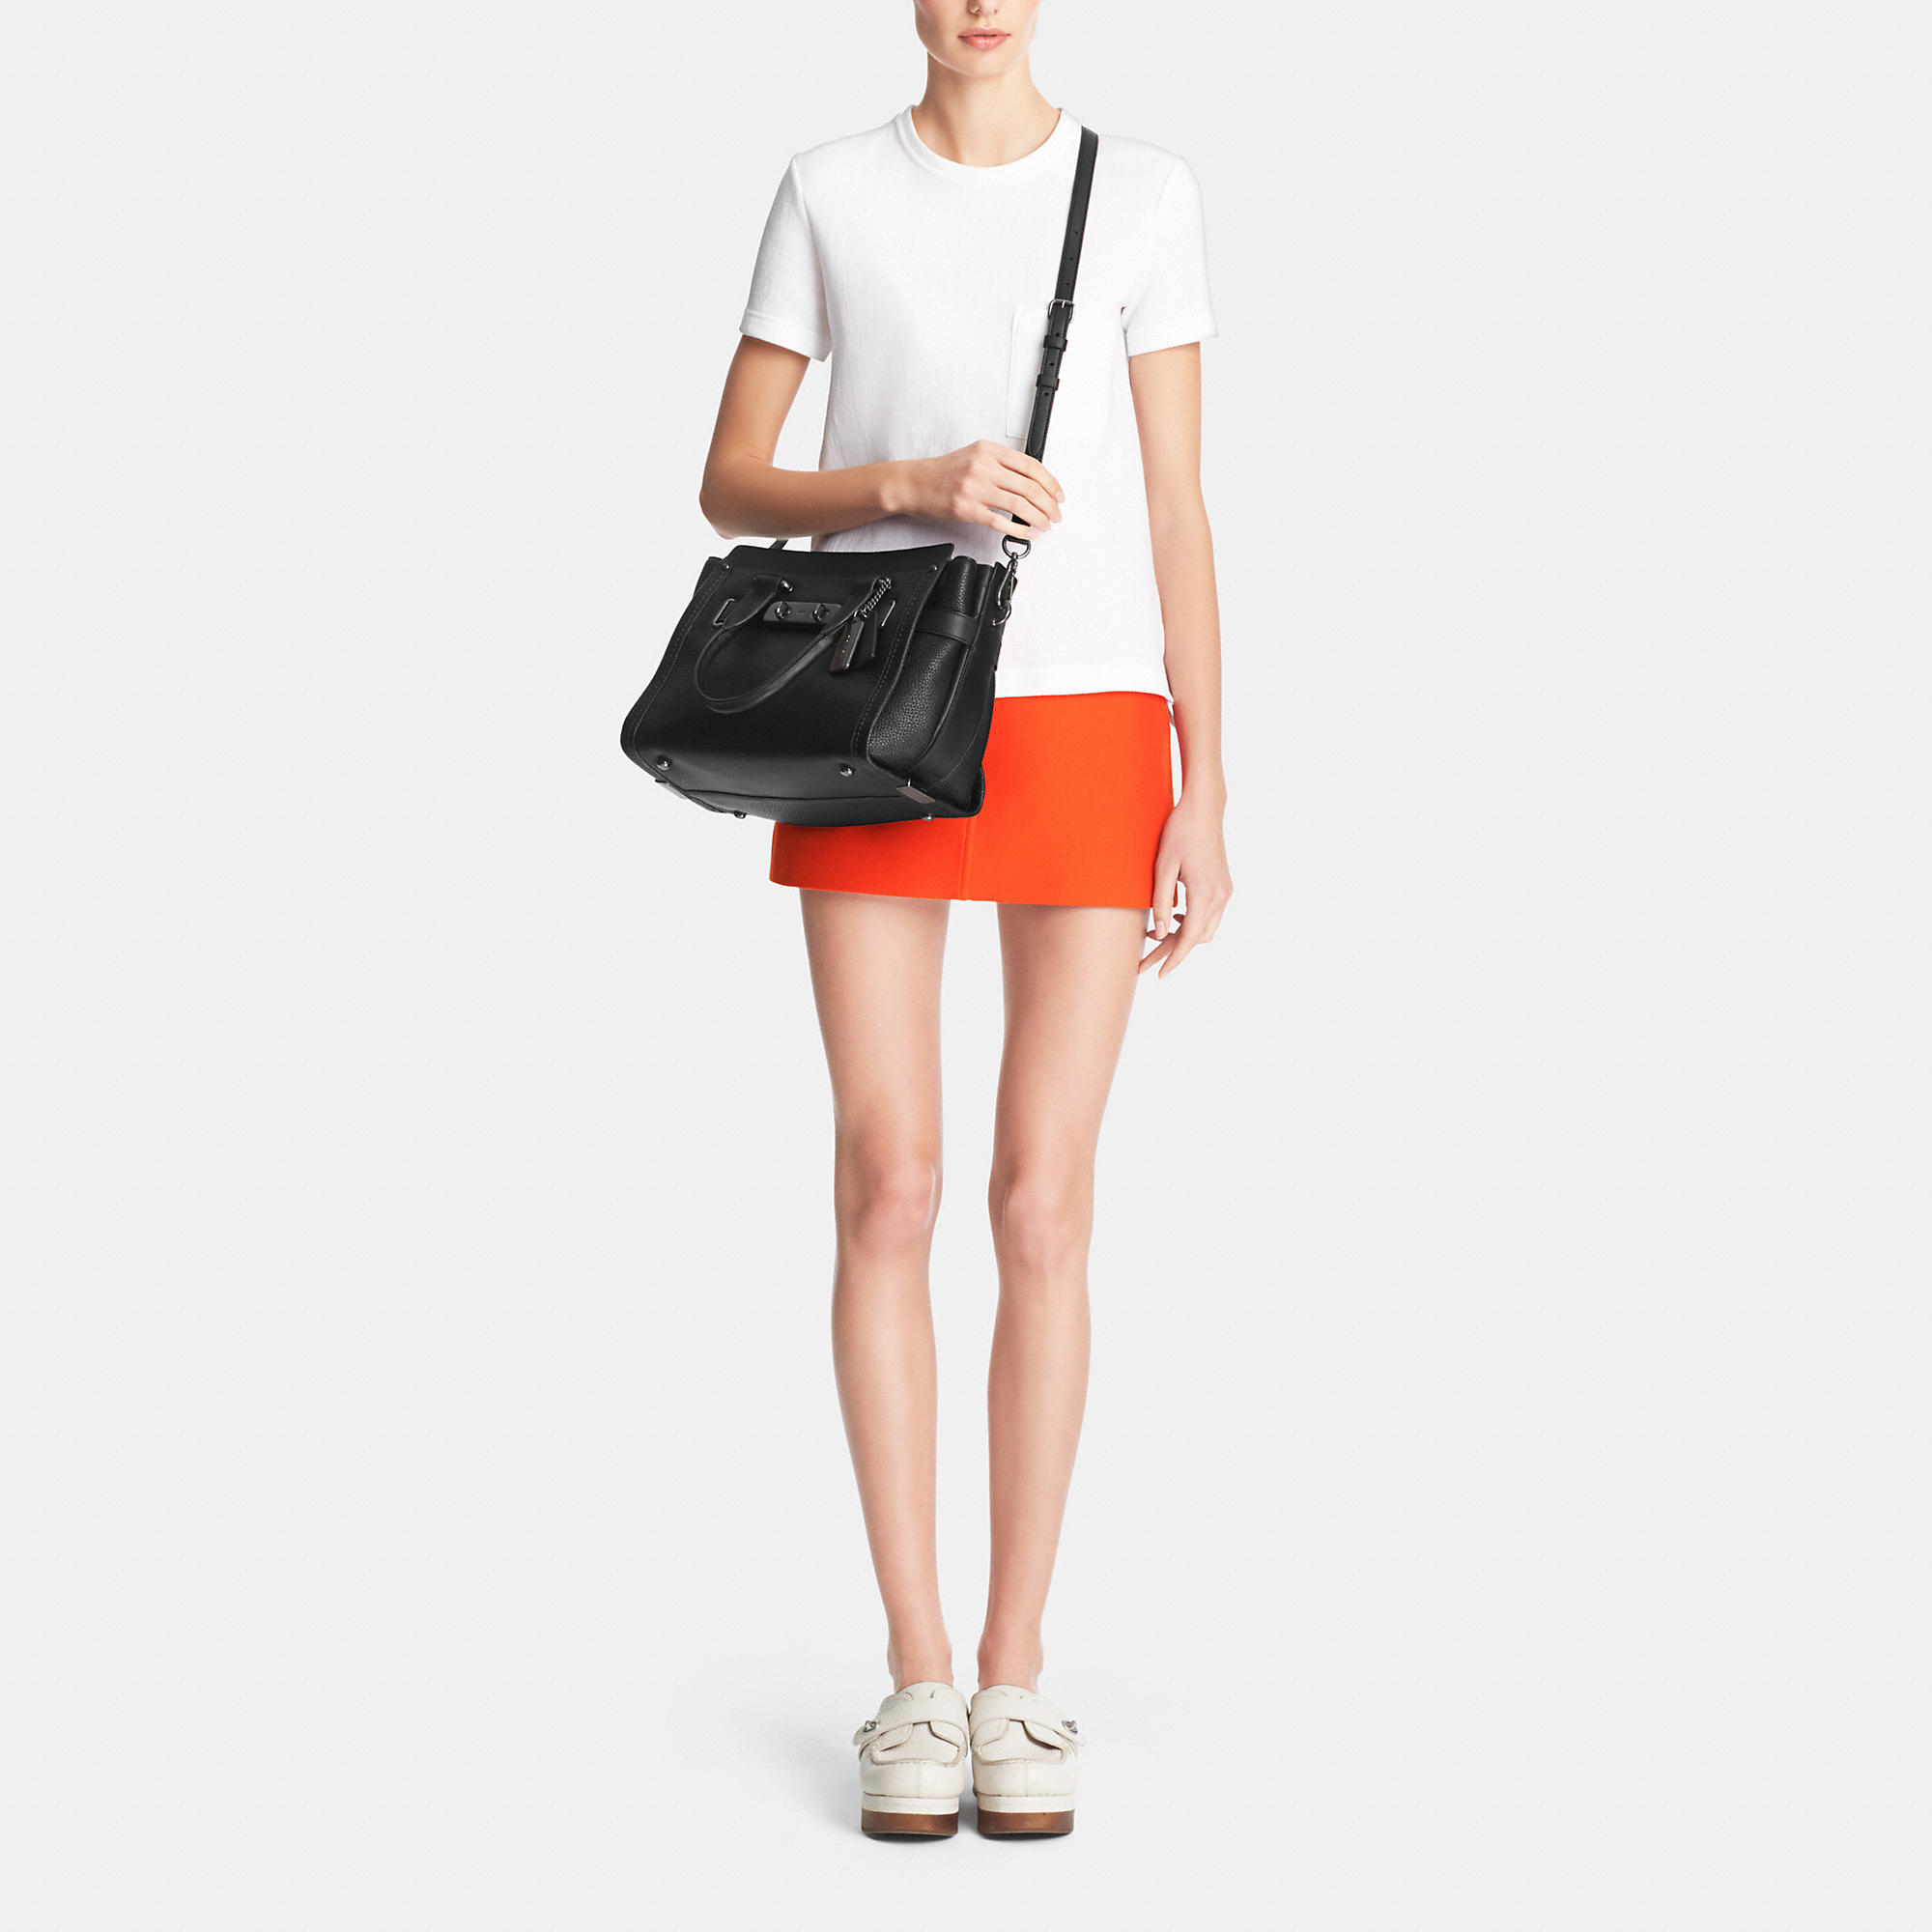 Lyst - COACH Swagger In Pebble Leather in Black 2557f3272c